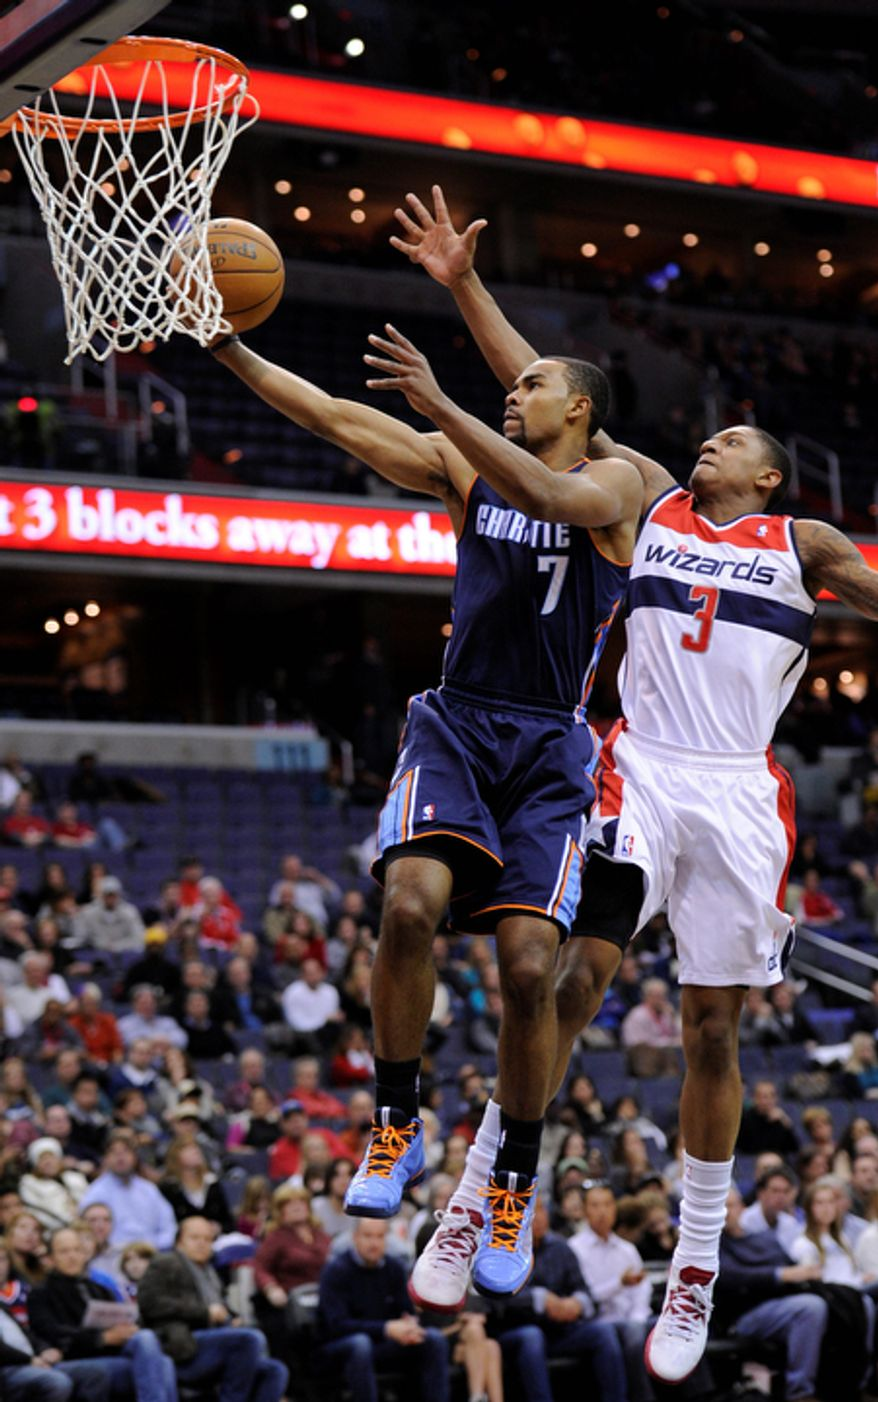 Charlotte Bobcats guard Ramon Sessions (7) goes to the basket against Washington Wizards guard Bradley Beal (3) during the first half of an NBA basketball game on Saturday, Nov. 24, 2012, in Washington. (AP Photo/Nick Wass)